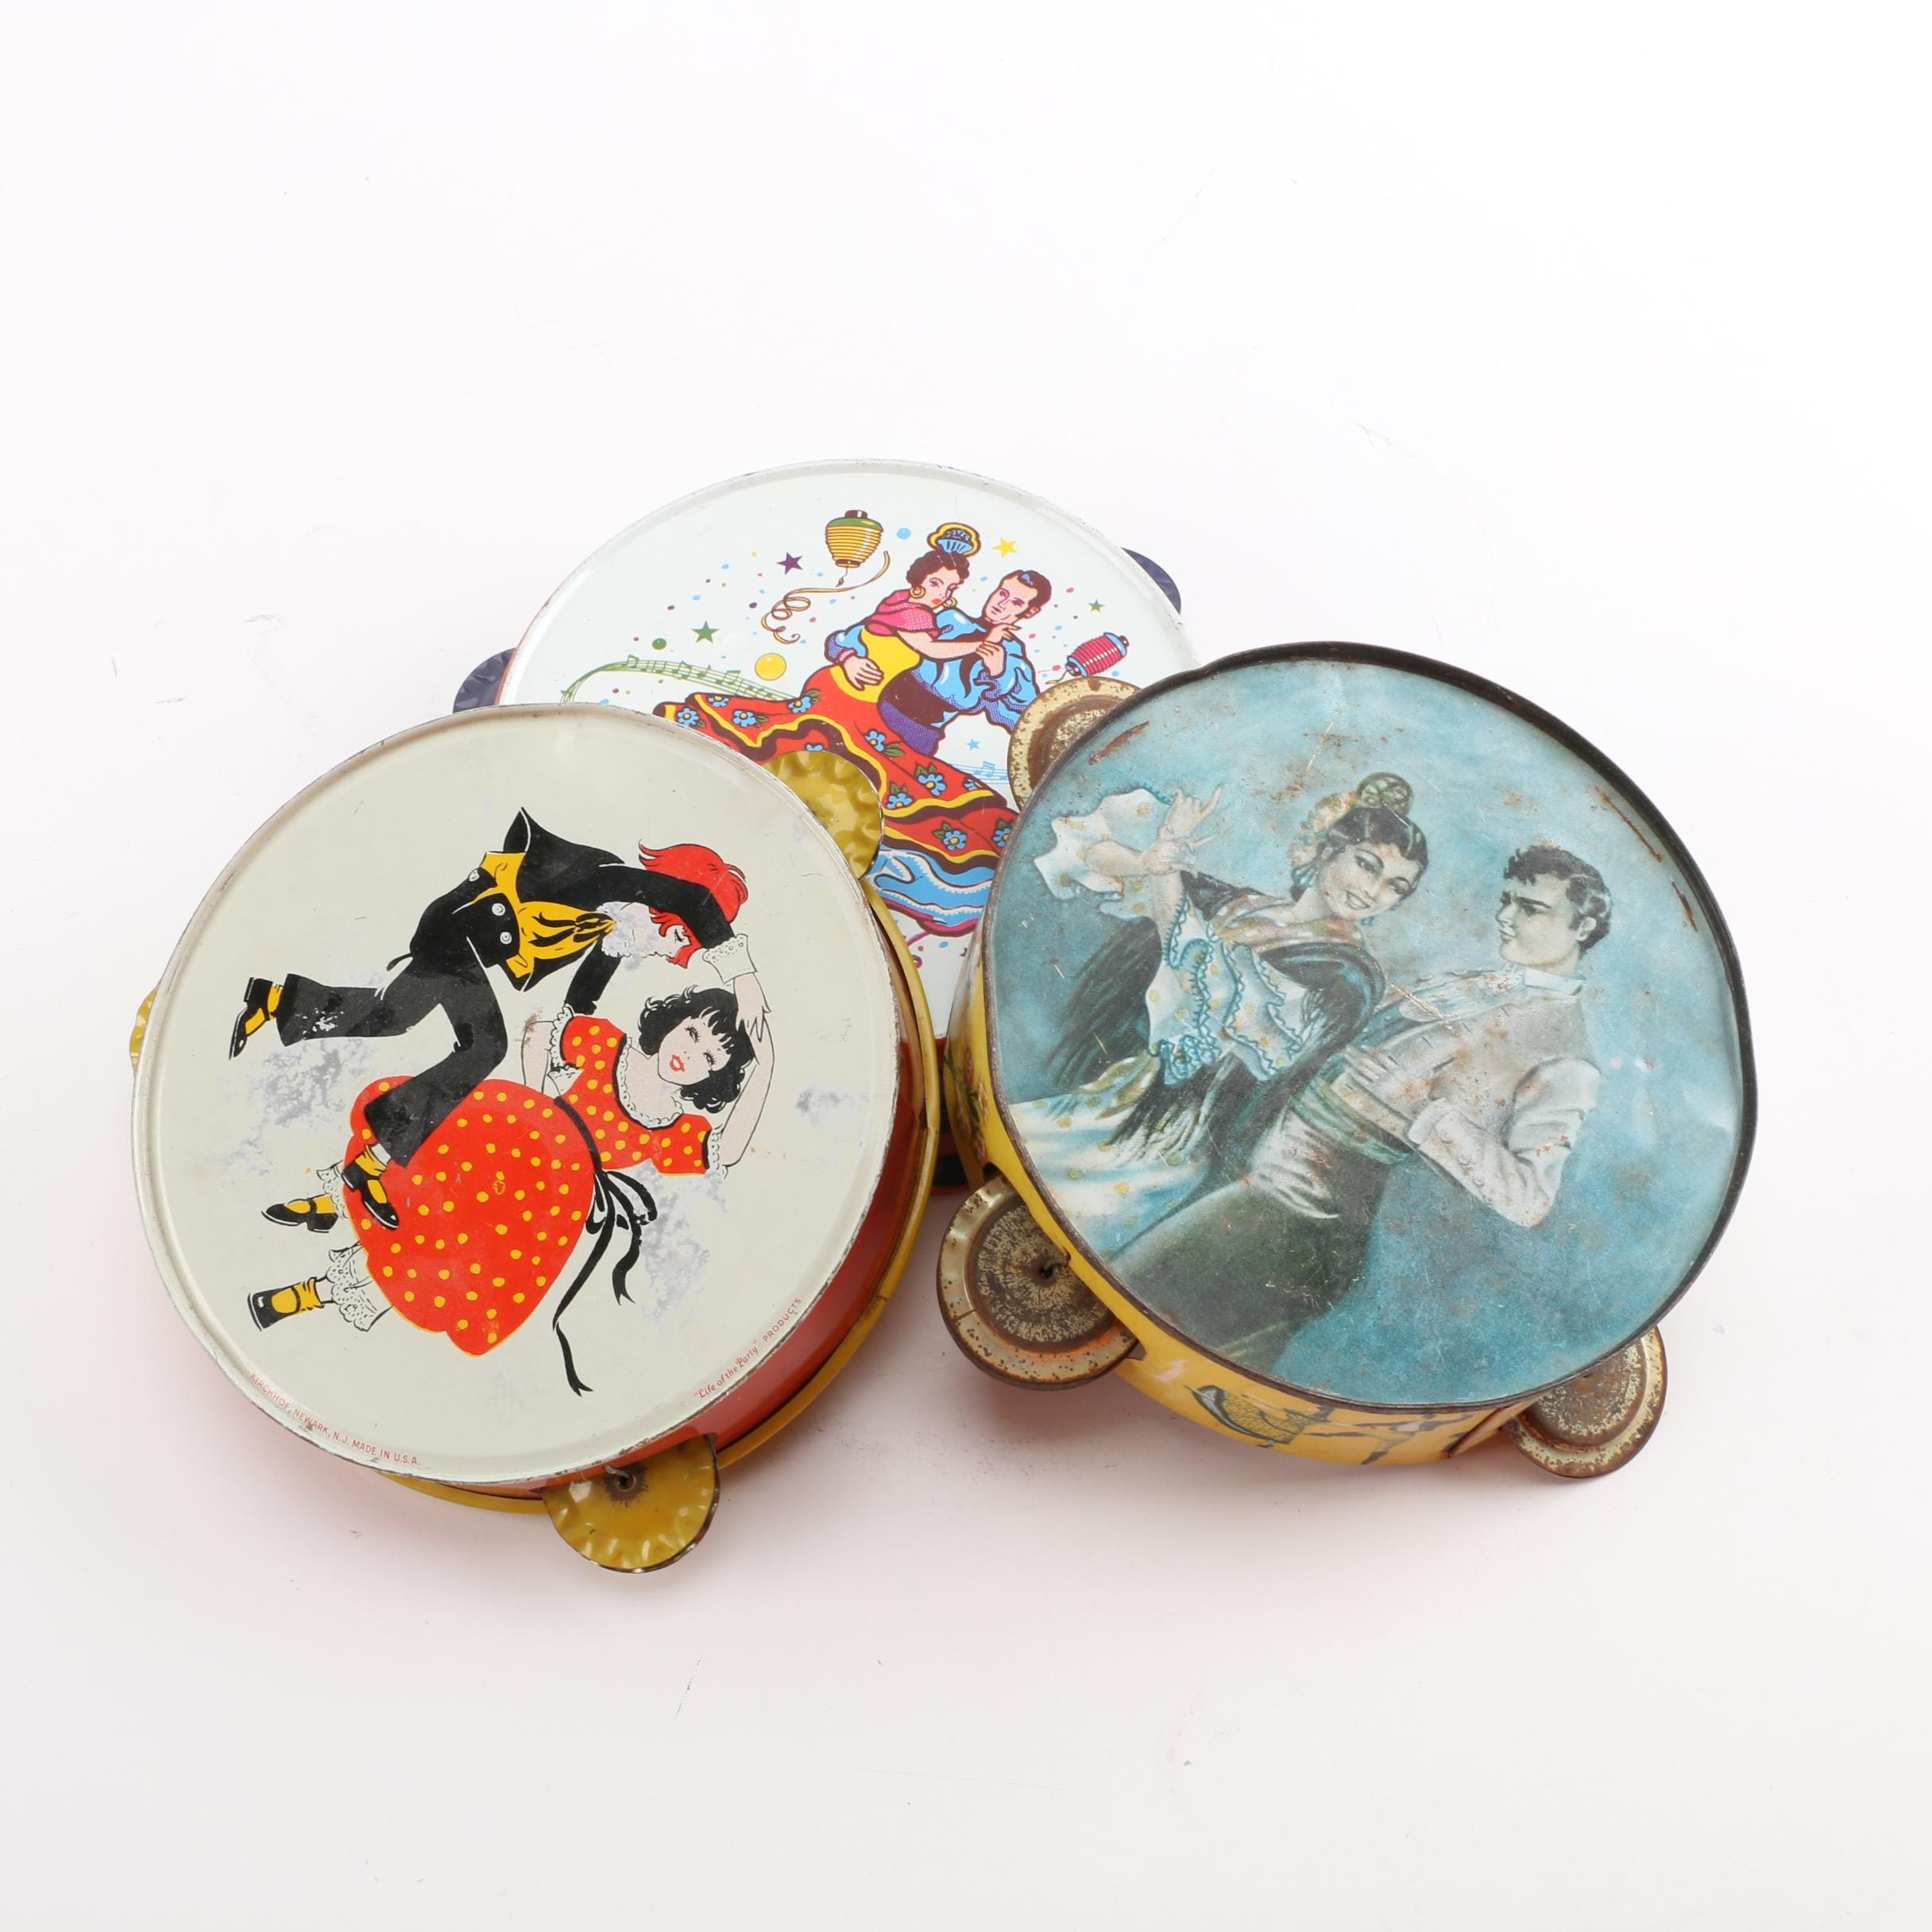 Vintage Tin Tambourines, Including Kirchhof